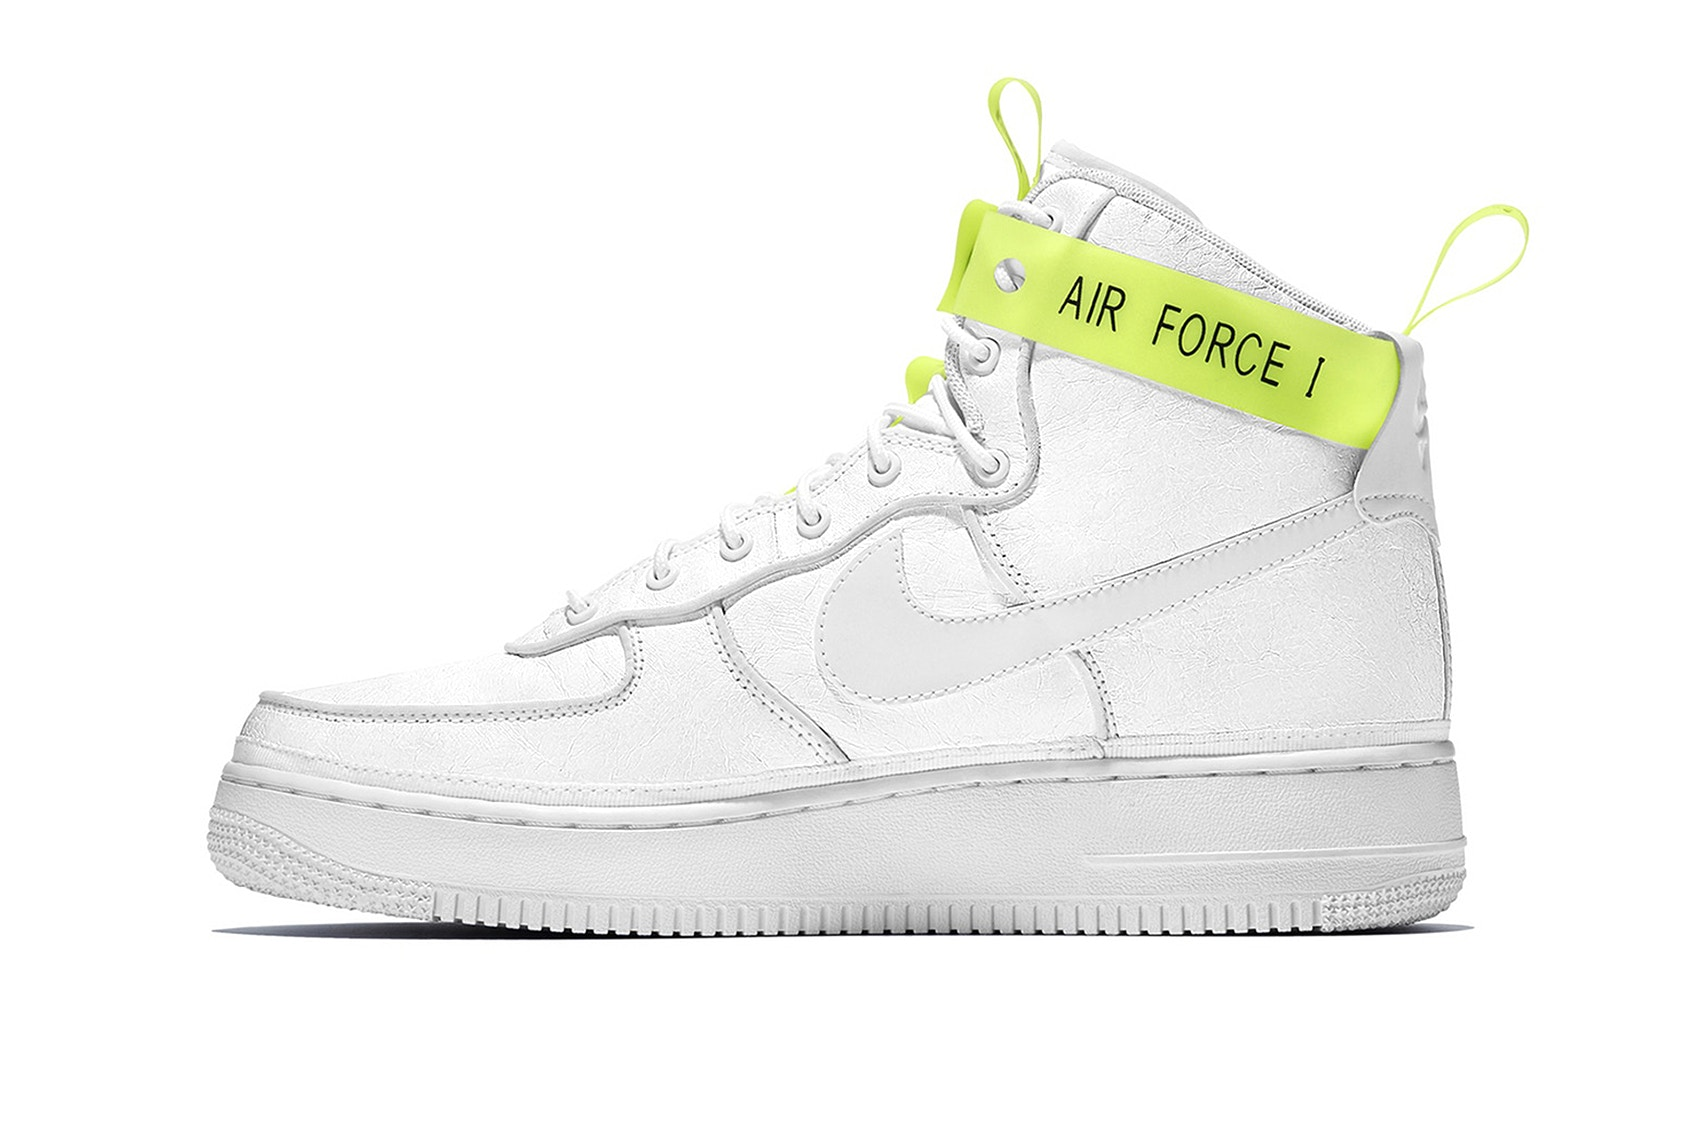 MAGIC STICK x Nike's Air Force 1s 'VIP' [SneakPeak] nike air force 1 hi vip magic stick release 1